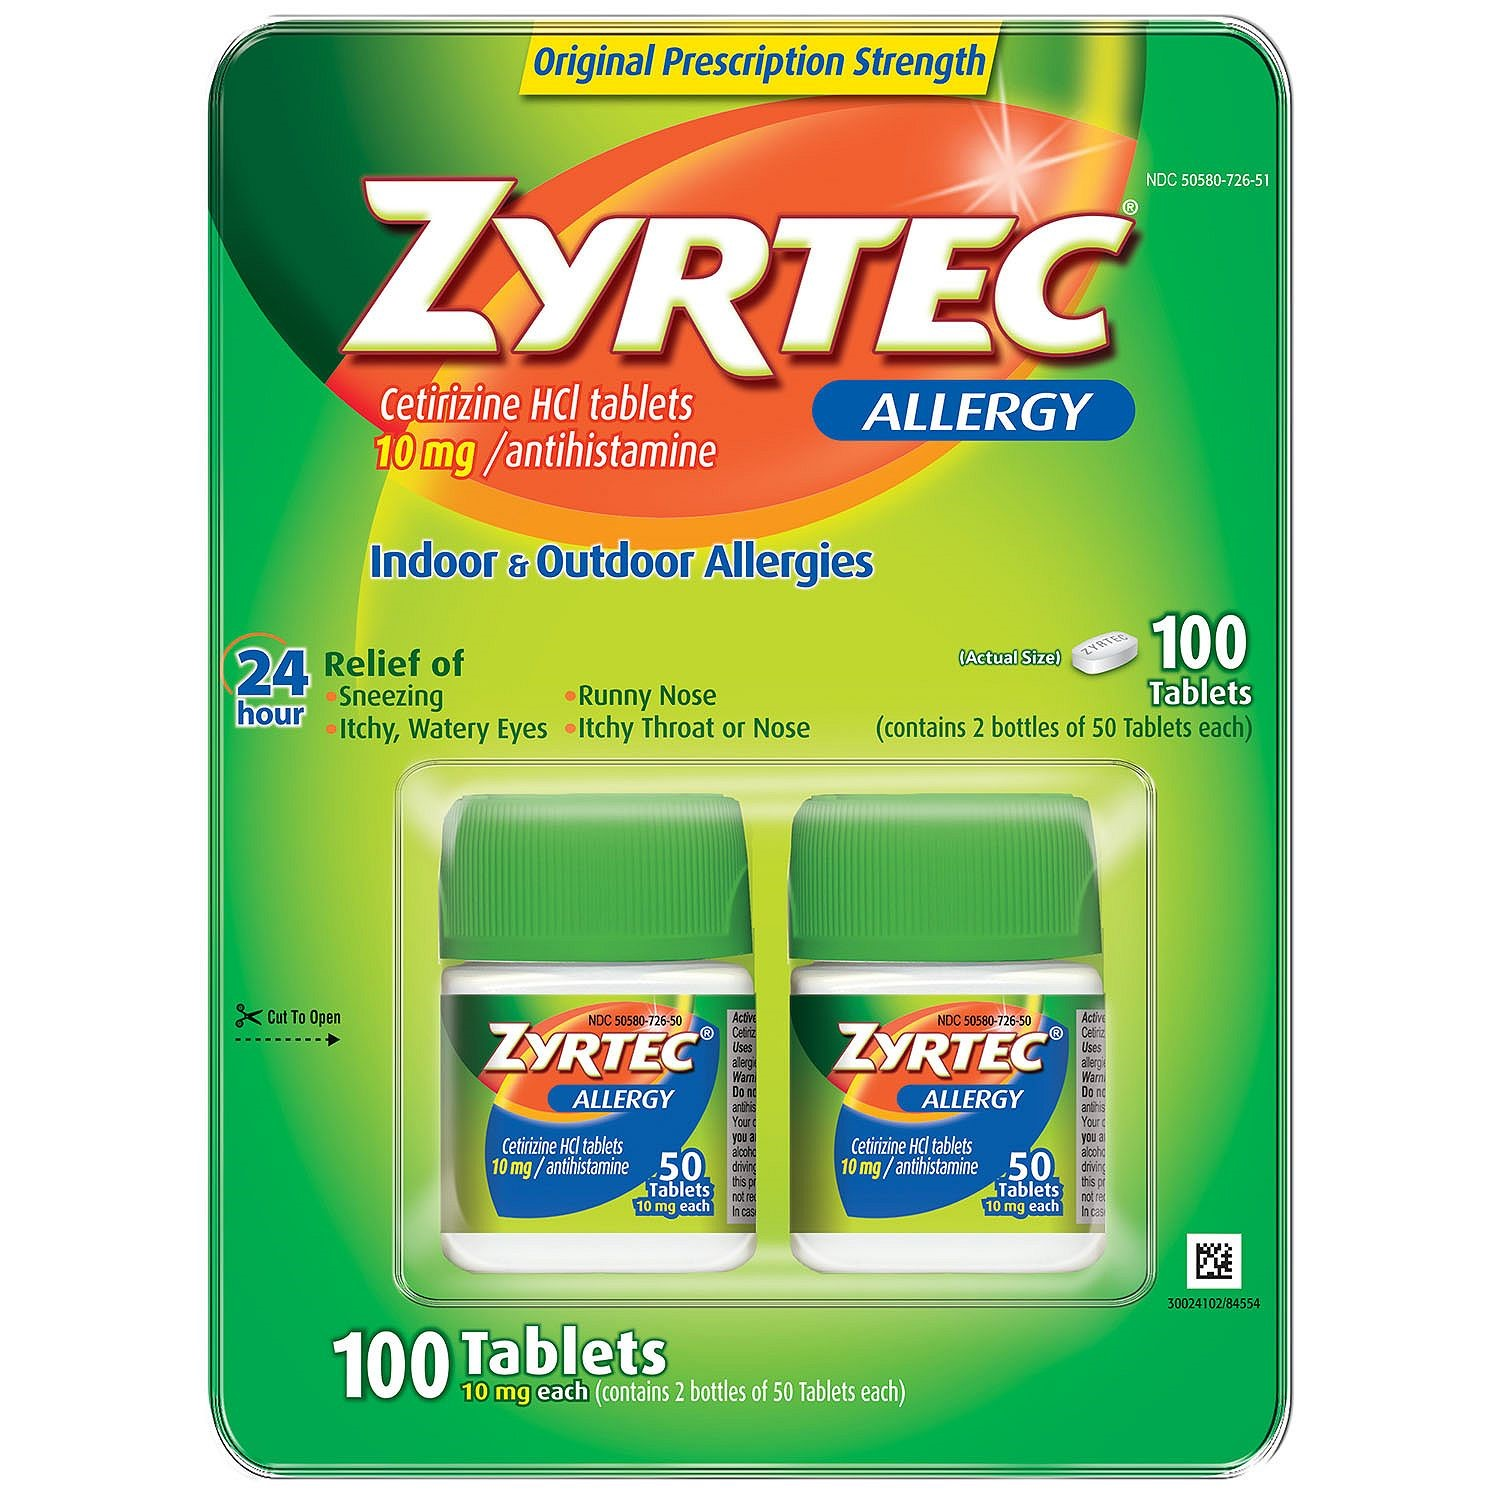 Zyrtec Allergy 10mg Tablet, 50 Tablet Bottles, 2 Ct